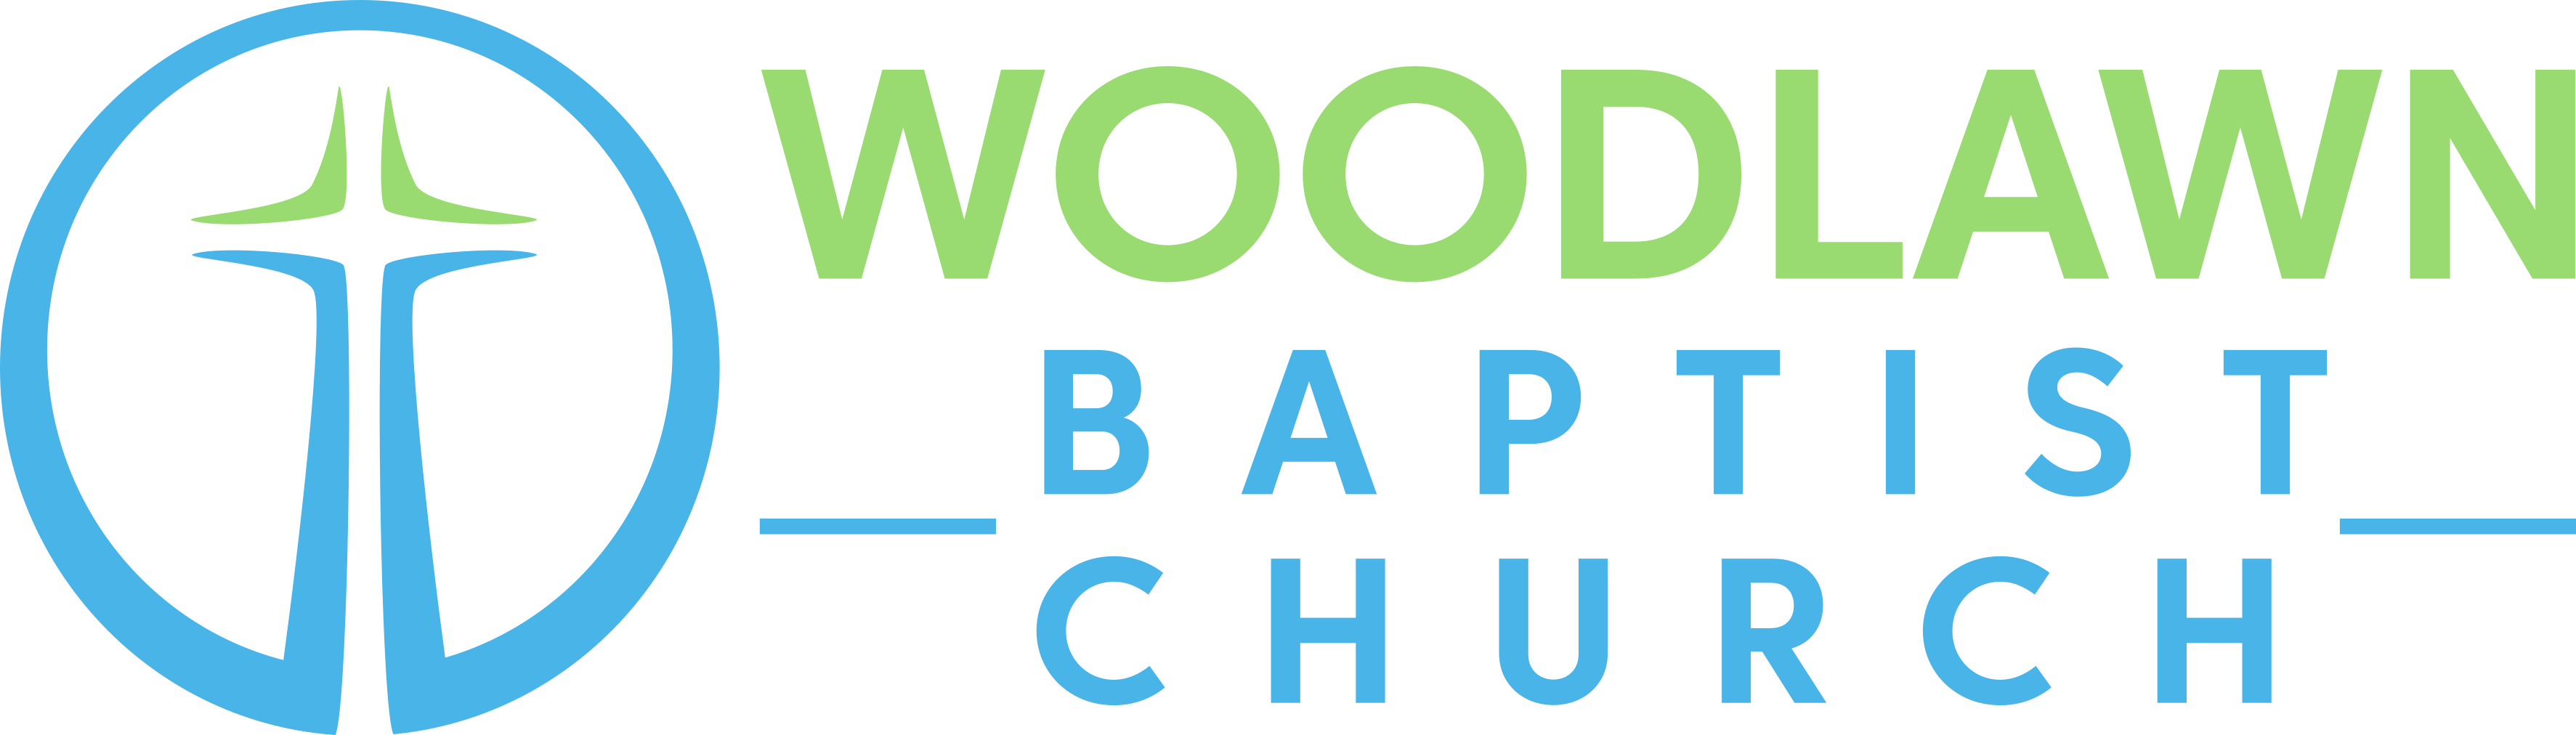 Woodlawn Baptist Church Logo